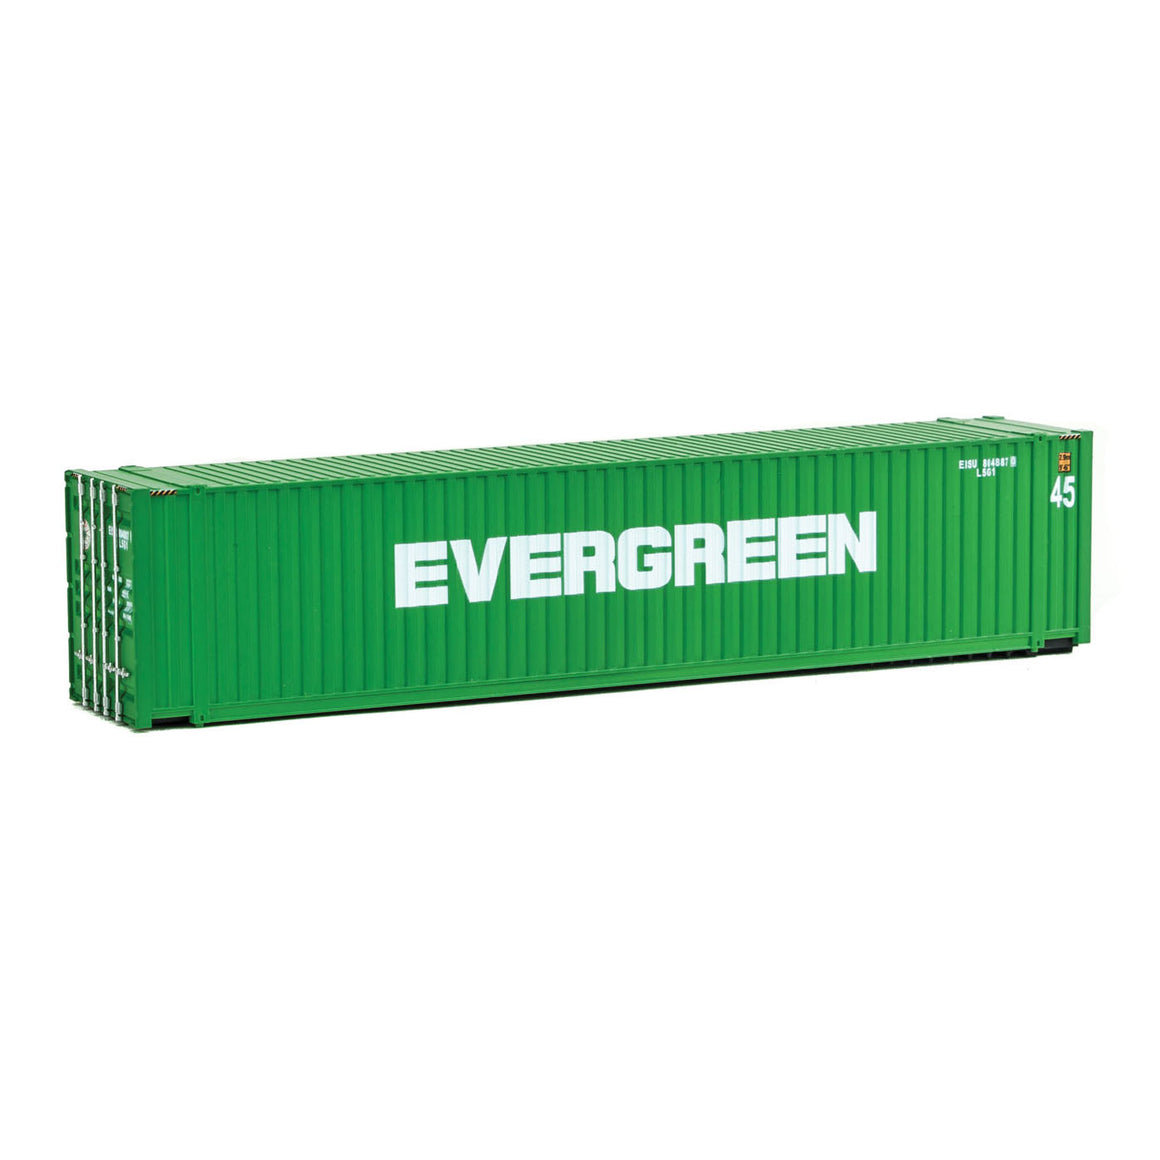 HO Scale: 45' CIMC Container - Evergreen